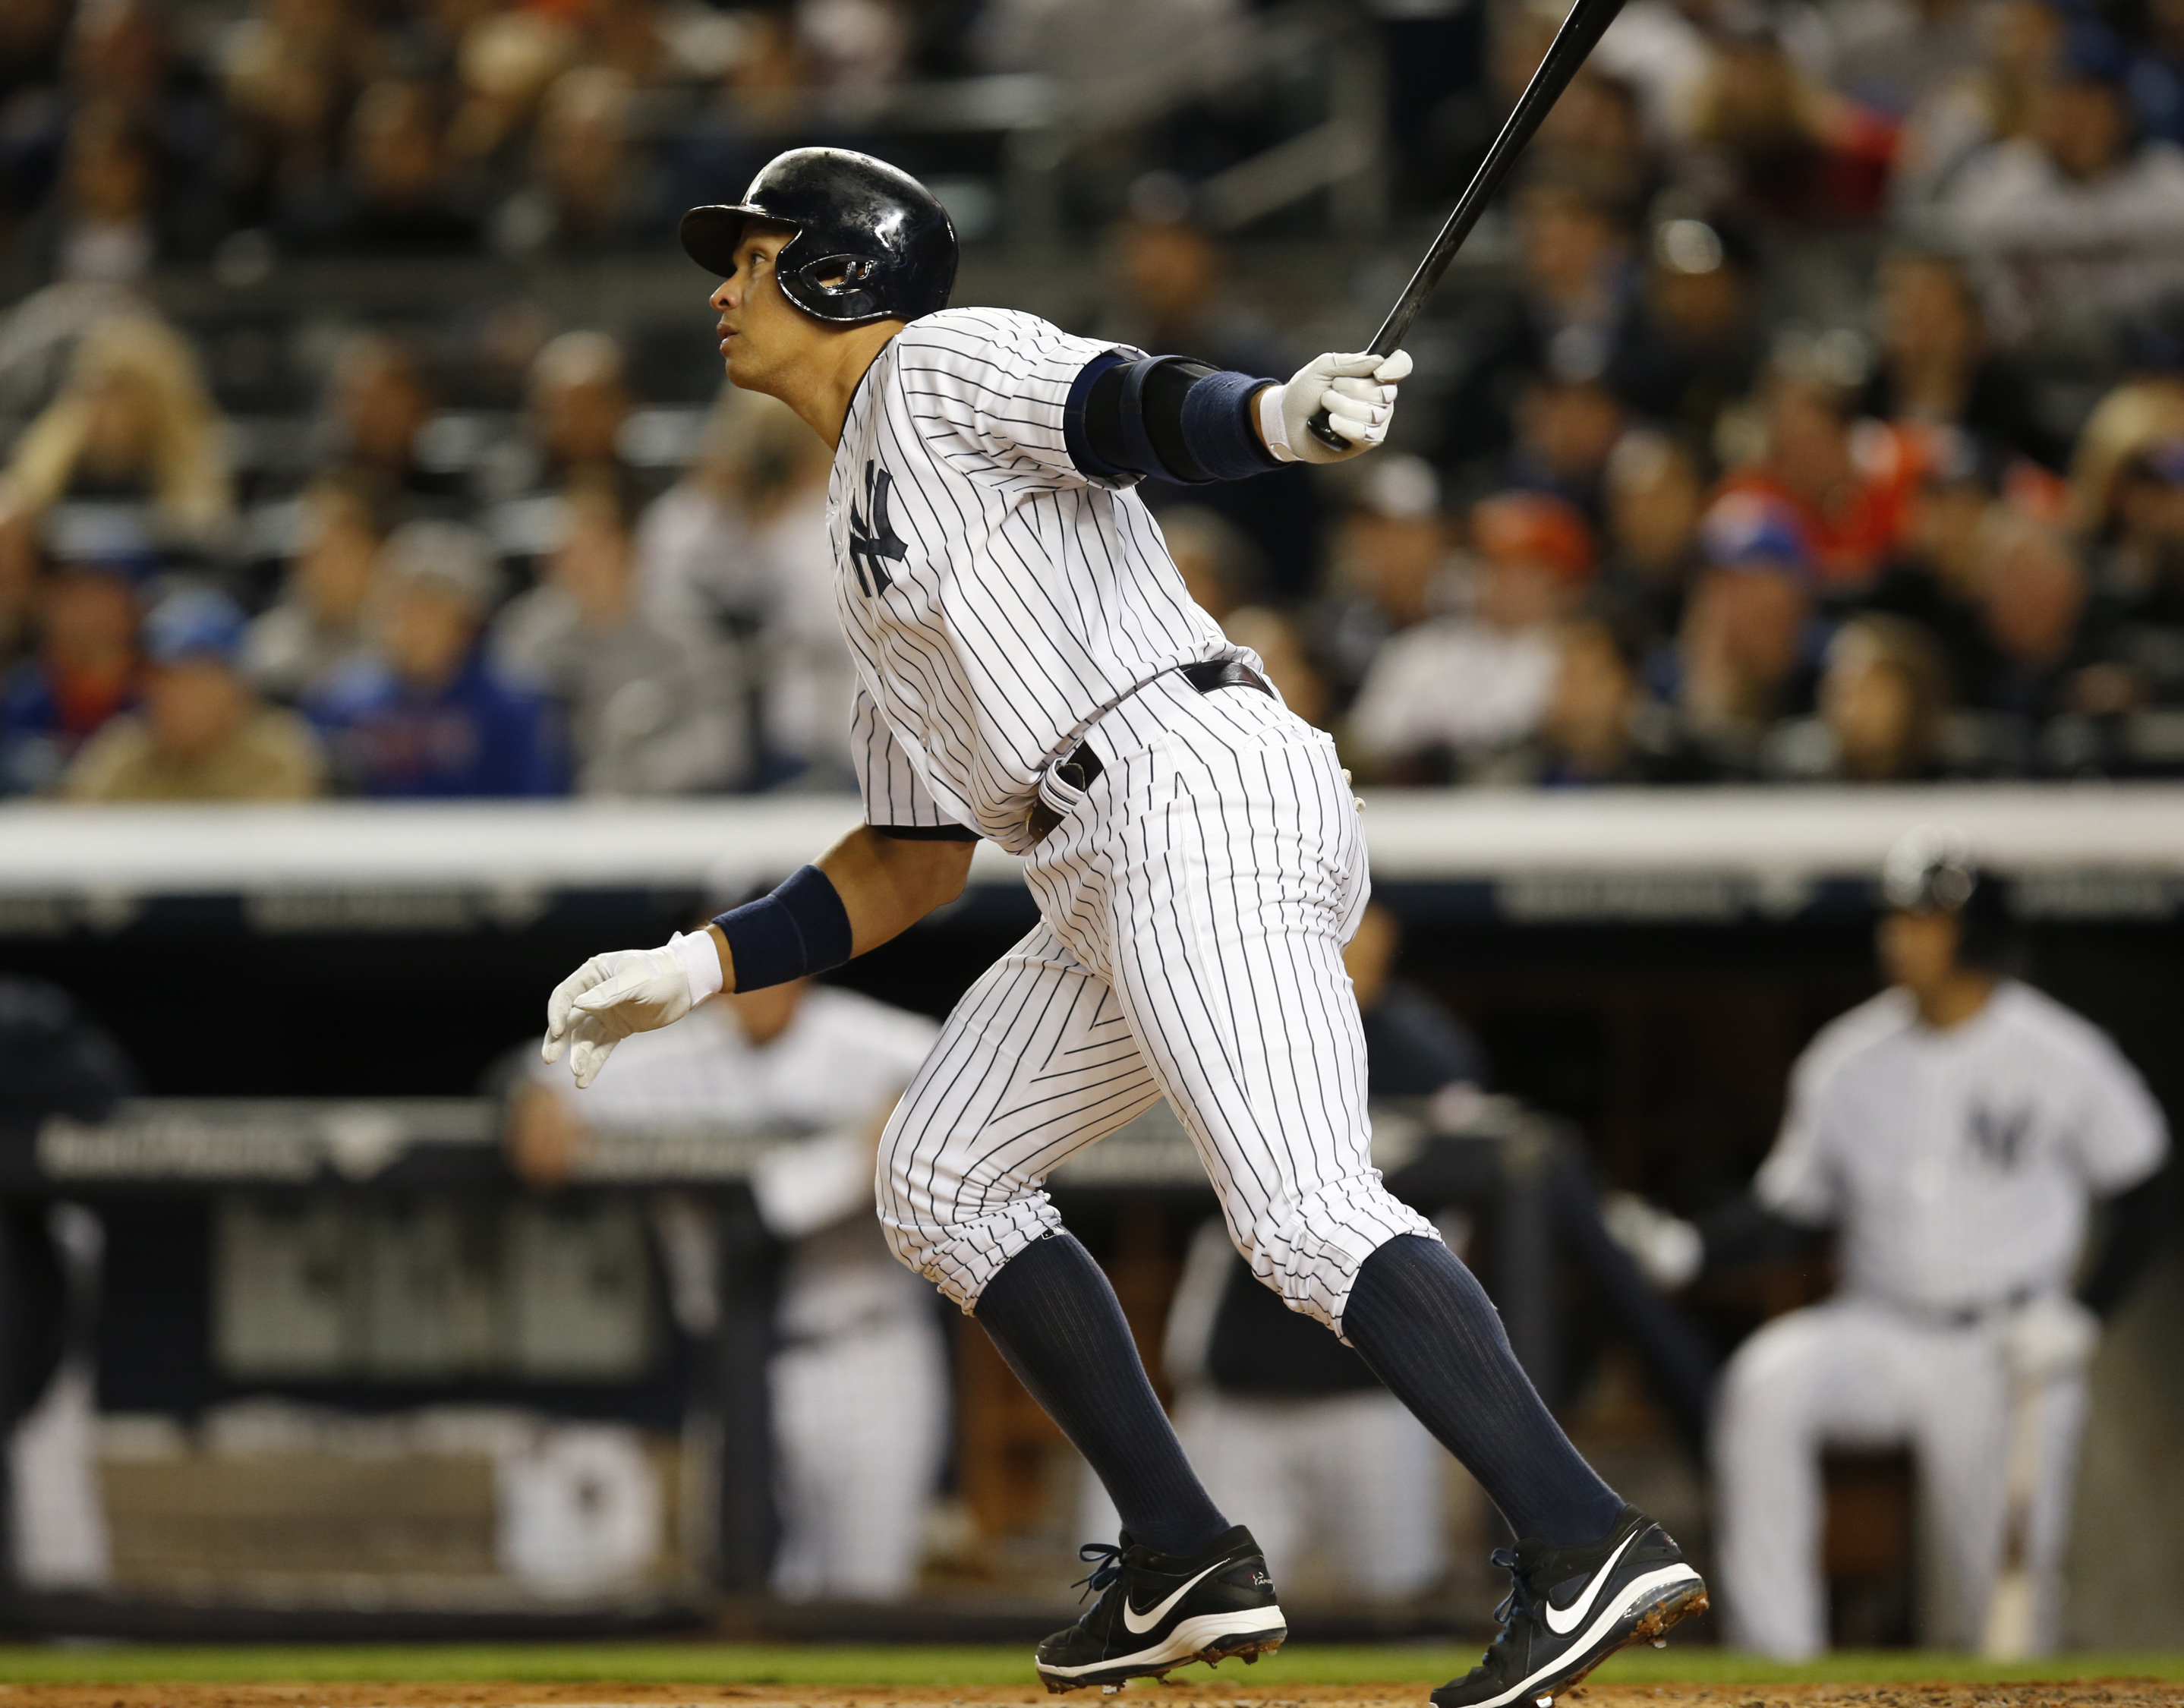 New York Yankees designated hitter Alex Rodriguez (13) hits a first-inning solo home run in a baseball game against the New York Mets at Yankee Stadium in New York, Sunday, April 26, 2015. Rodriguez now stands at 659 career home runs and needs one more to